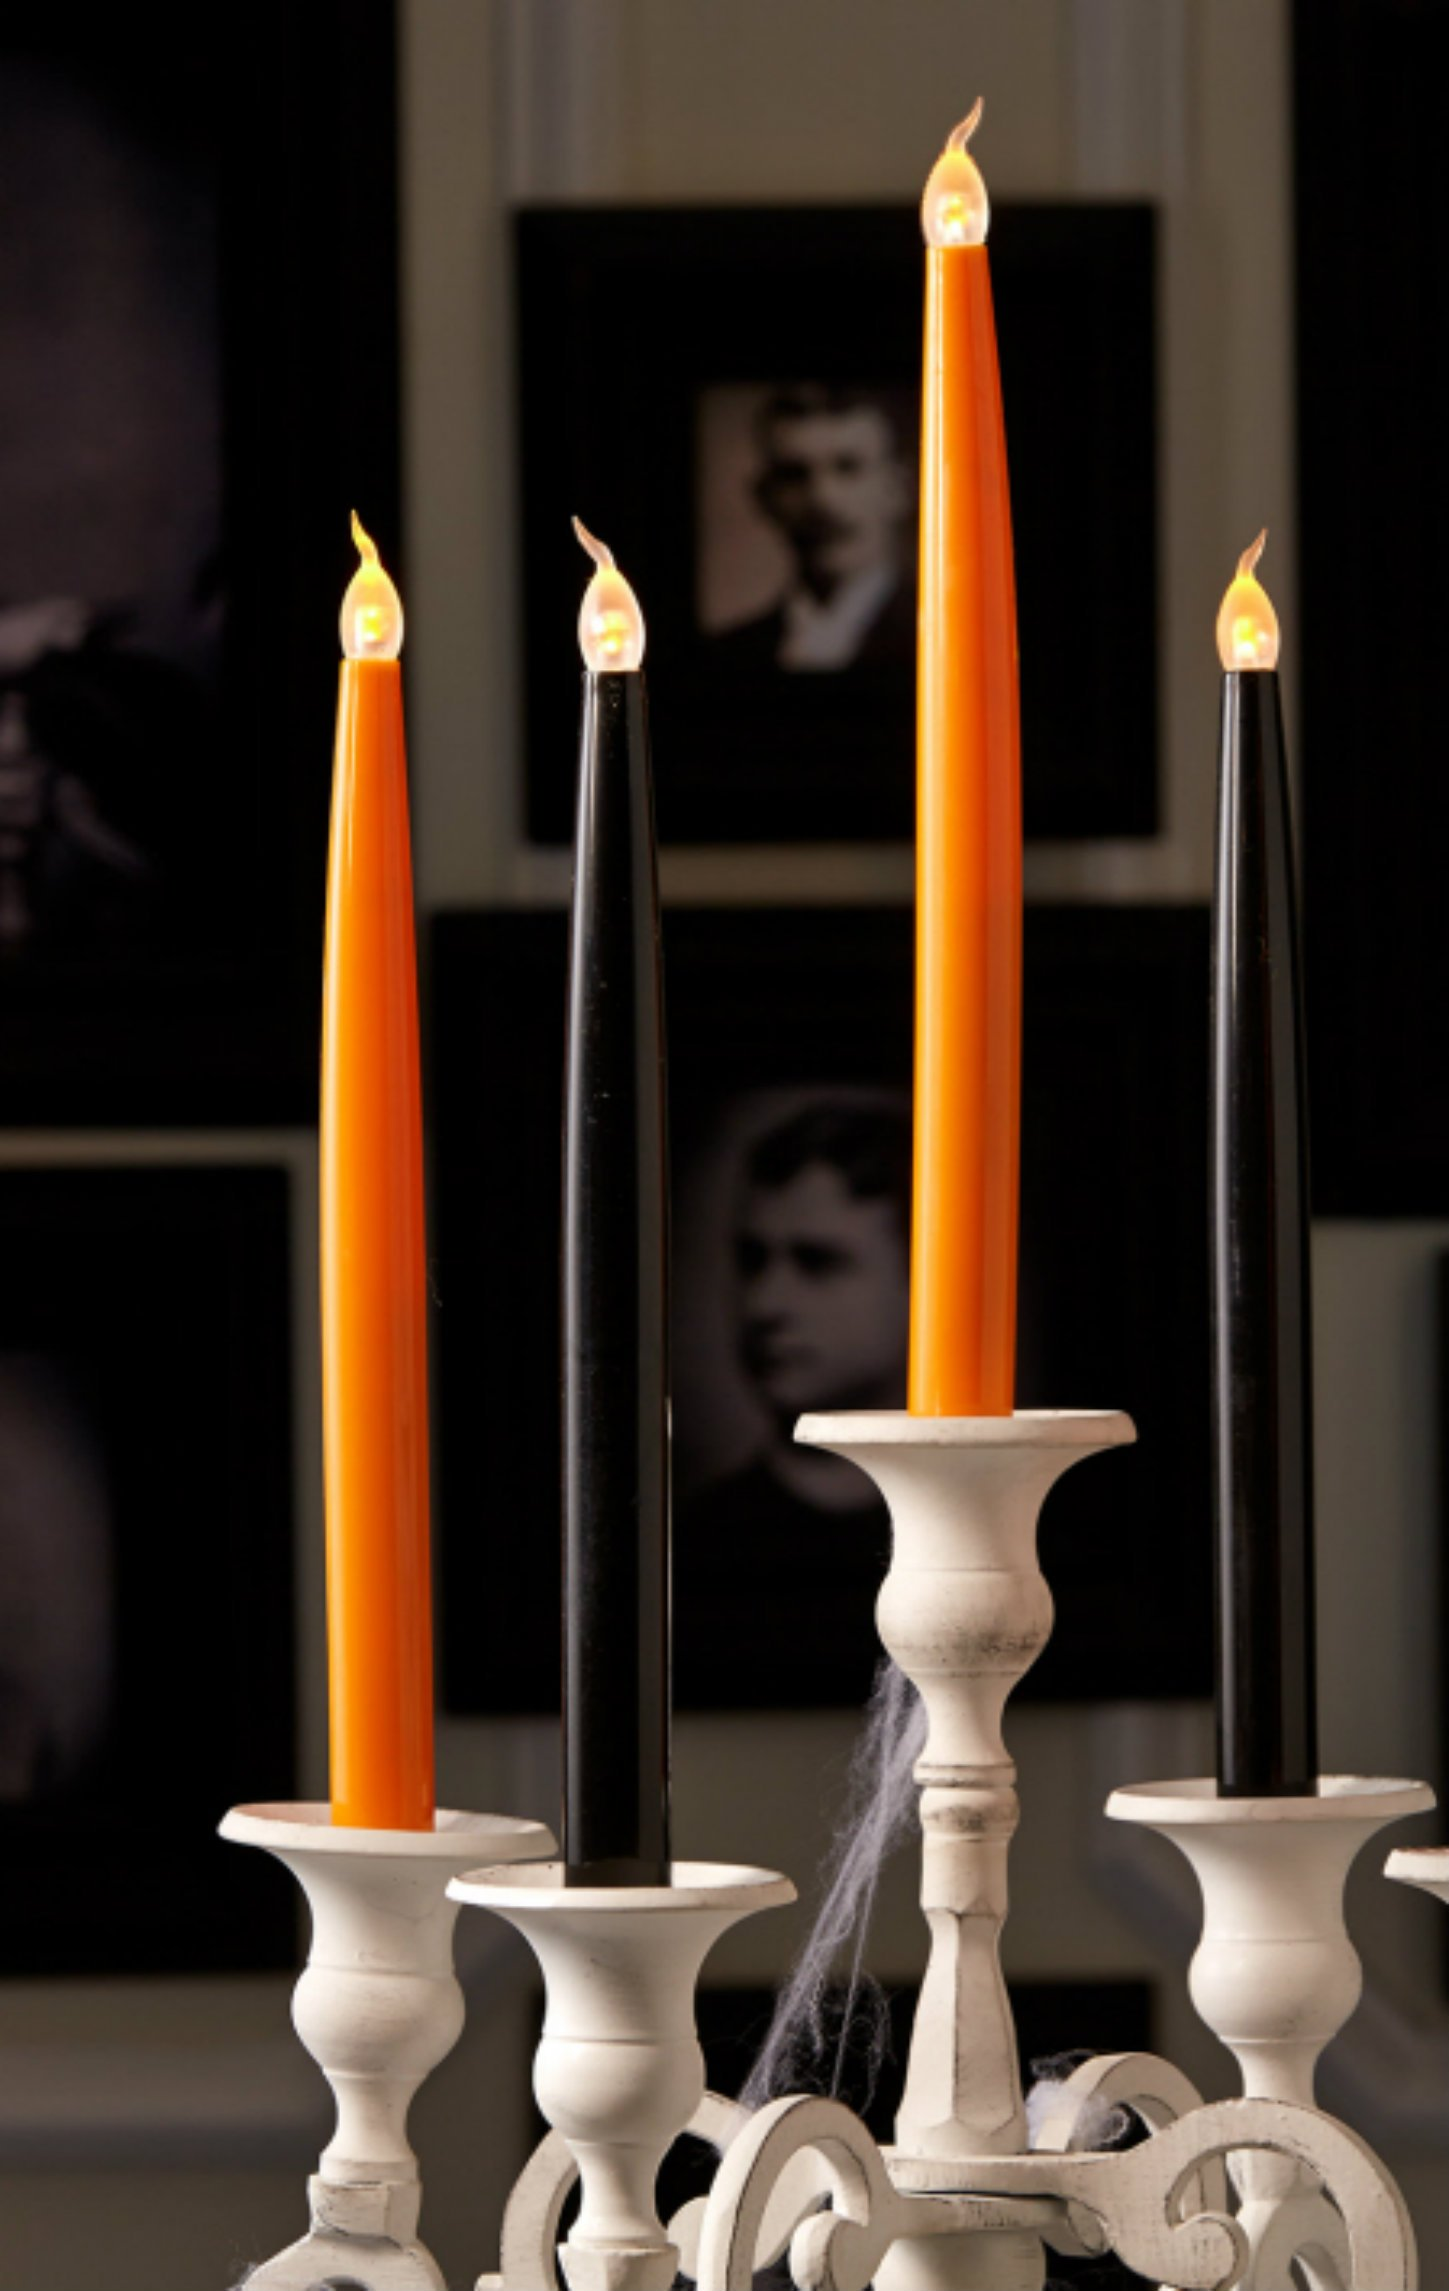 Halloween Flickering Flameless Child Pet Safe Candles LED 10'' Taper 4 Pc Set Orange & Black in Gift Boxes by Two's Company